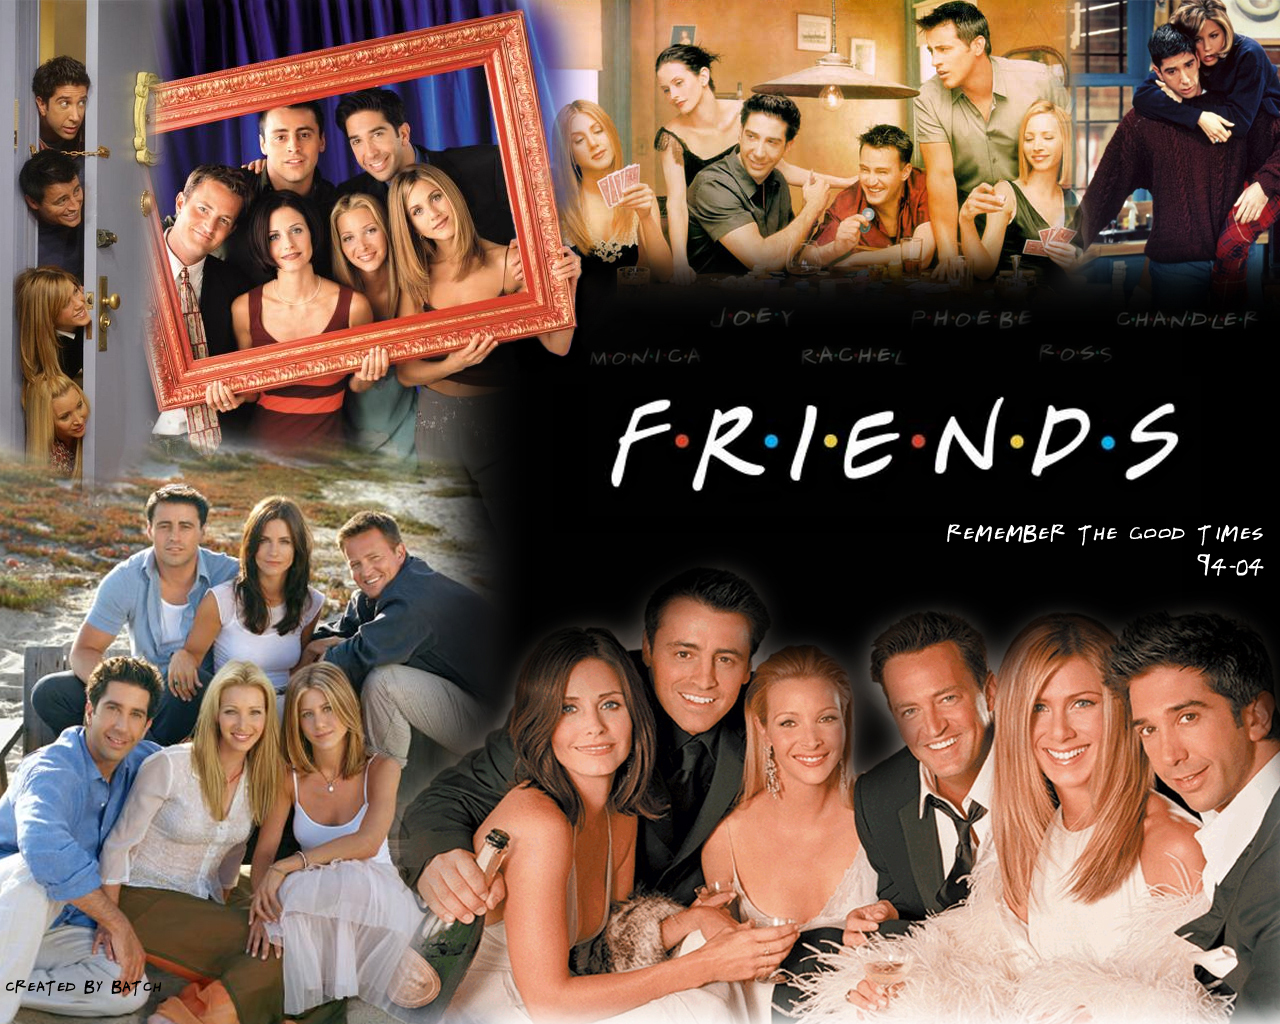 Friends Commemorative Wallpaper   Friends Wallpaper 8131512 1280x1024